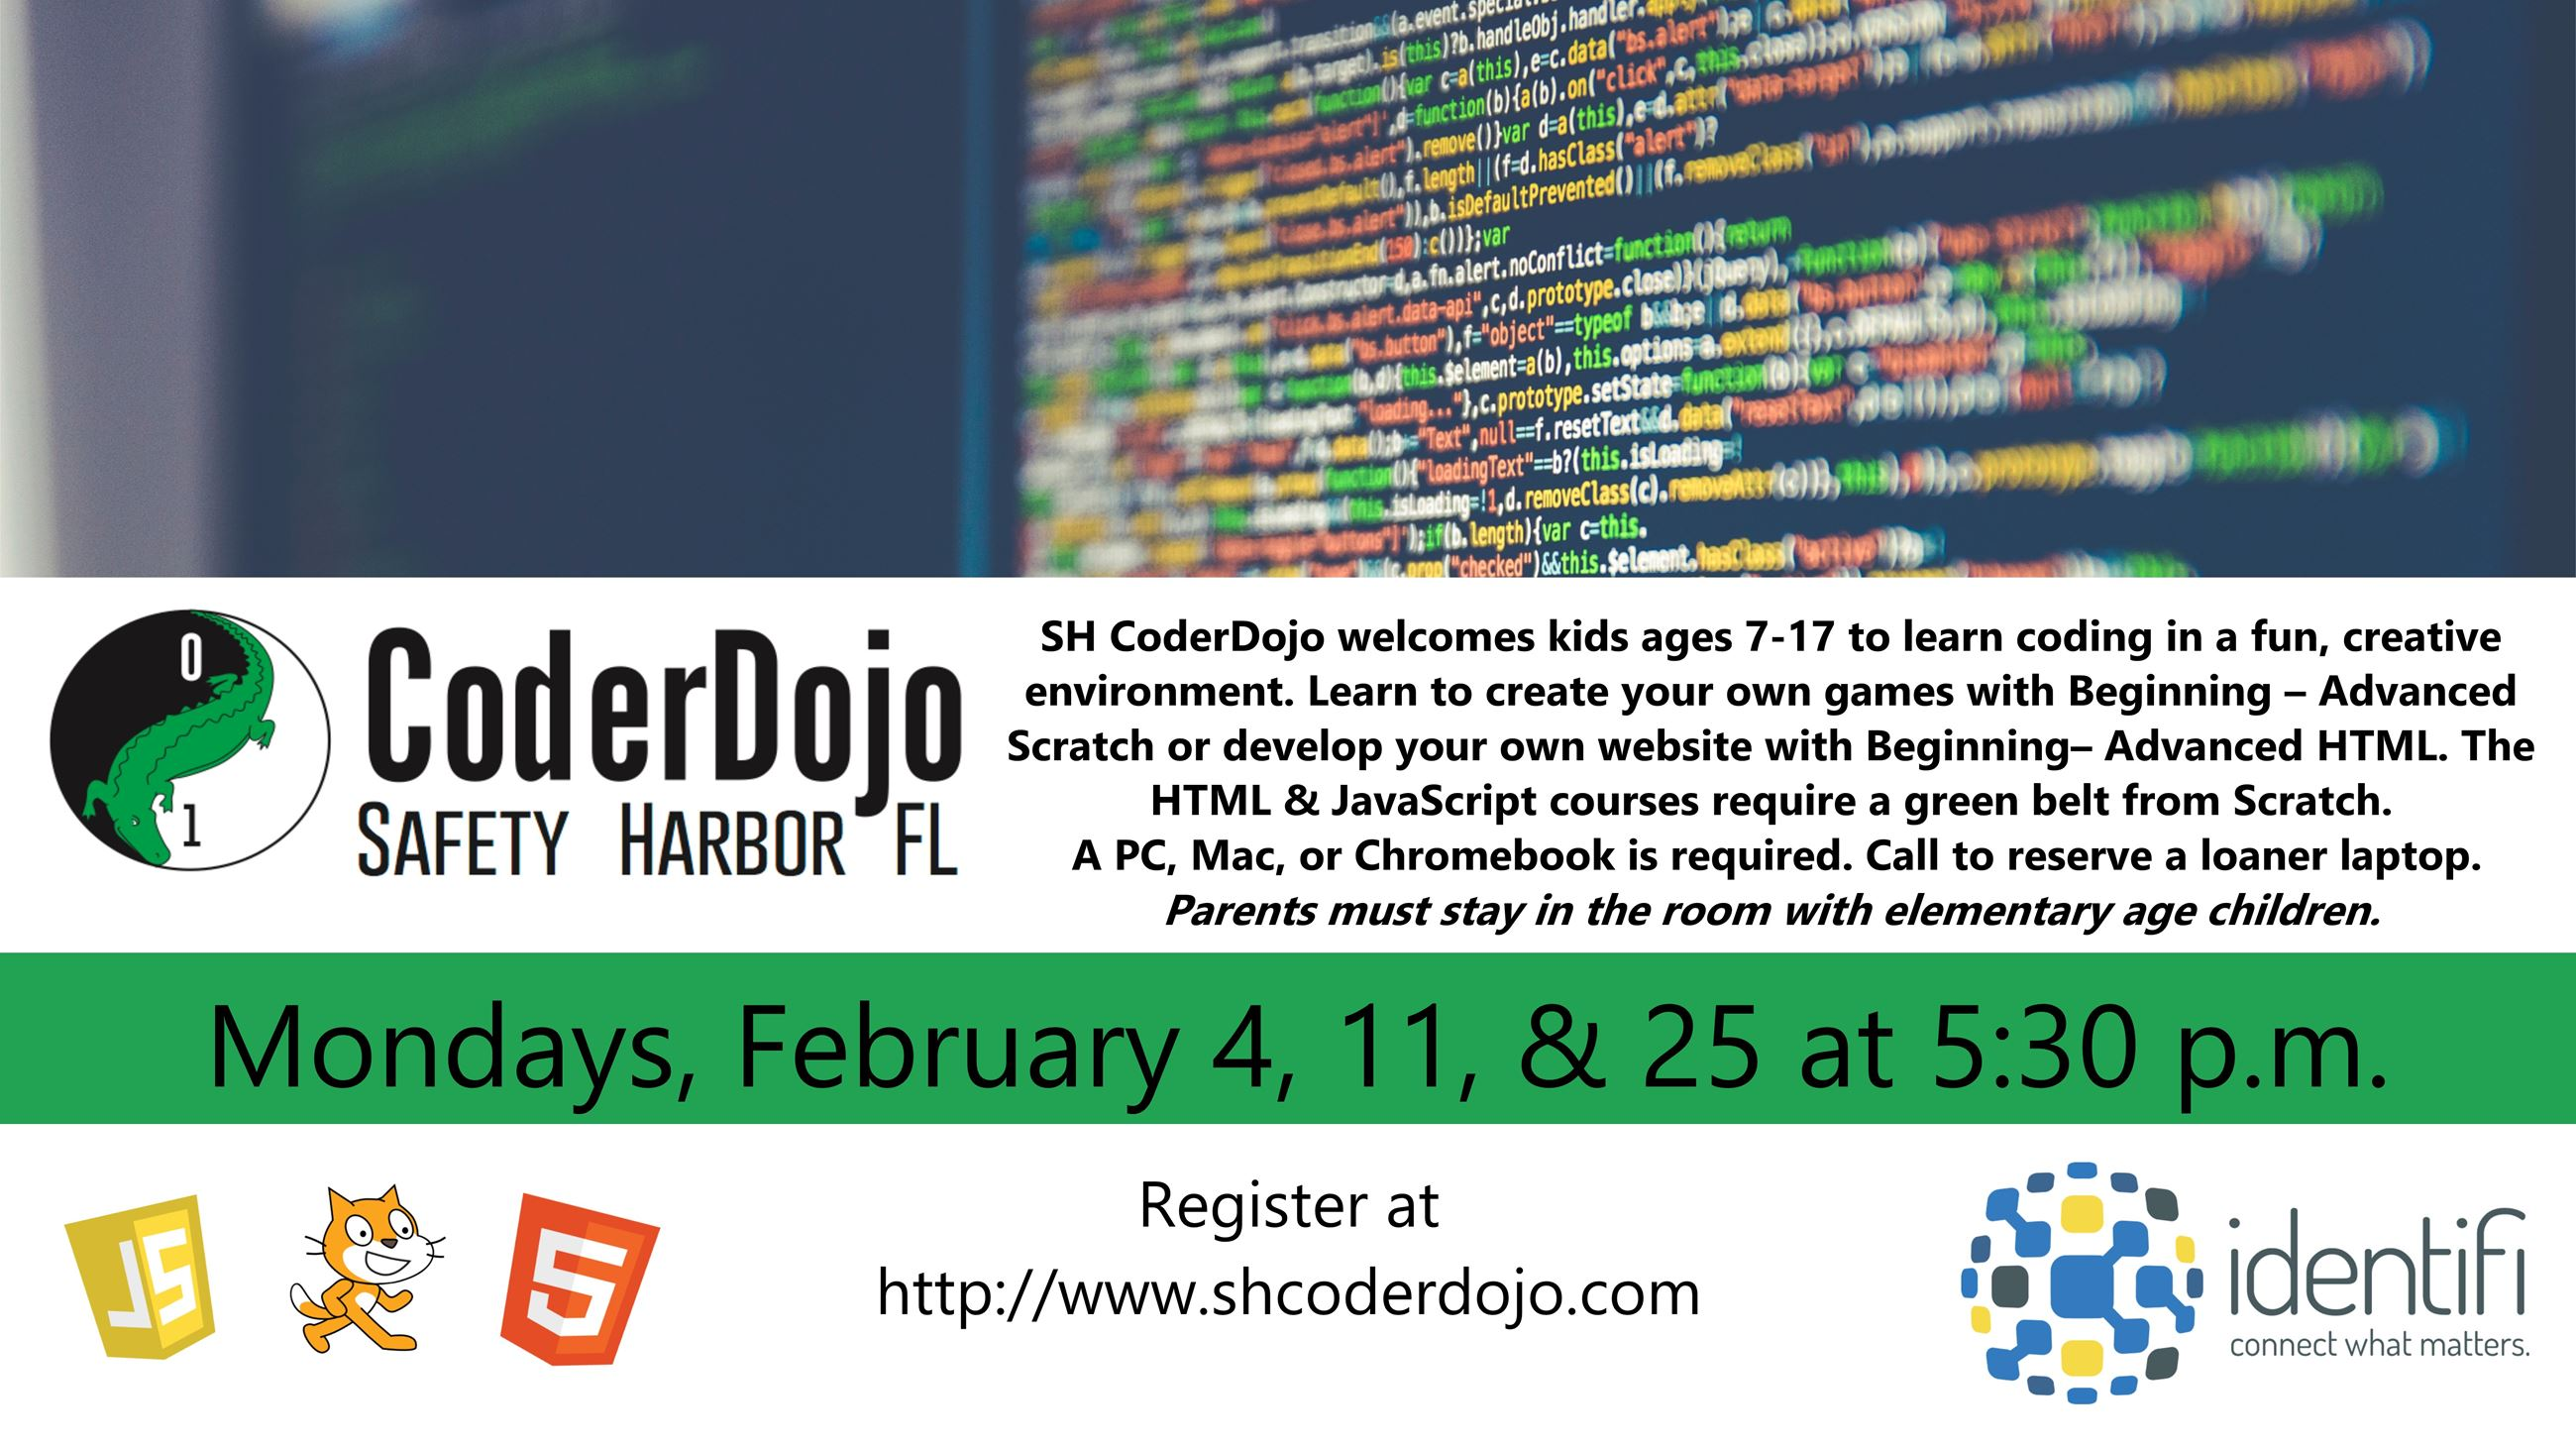 CoderDojo. February 4, 11, & 25, @ 5:30 p.m. Kids ages 7 to 17 learn coding. Register at www.shcoder